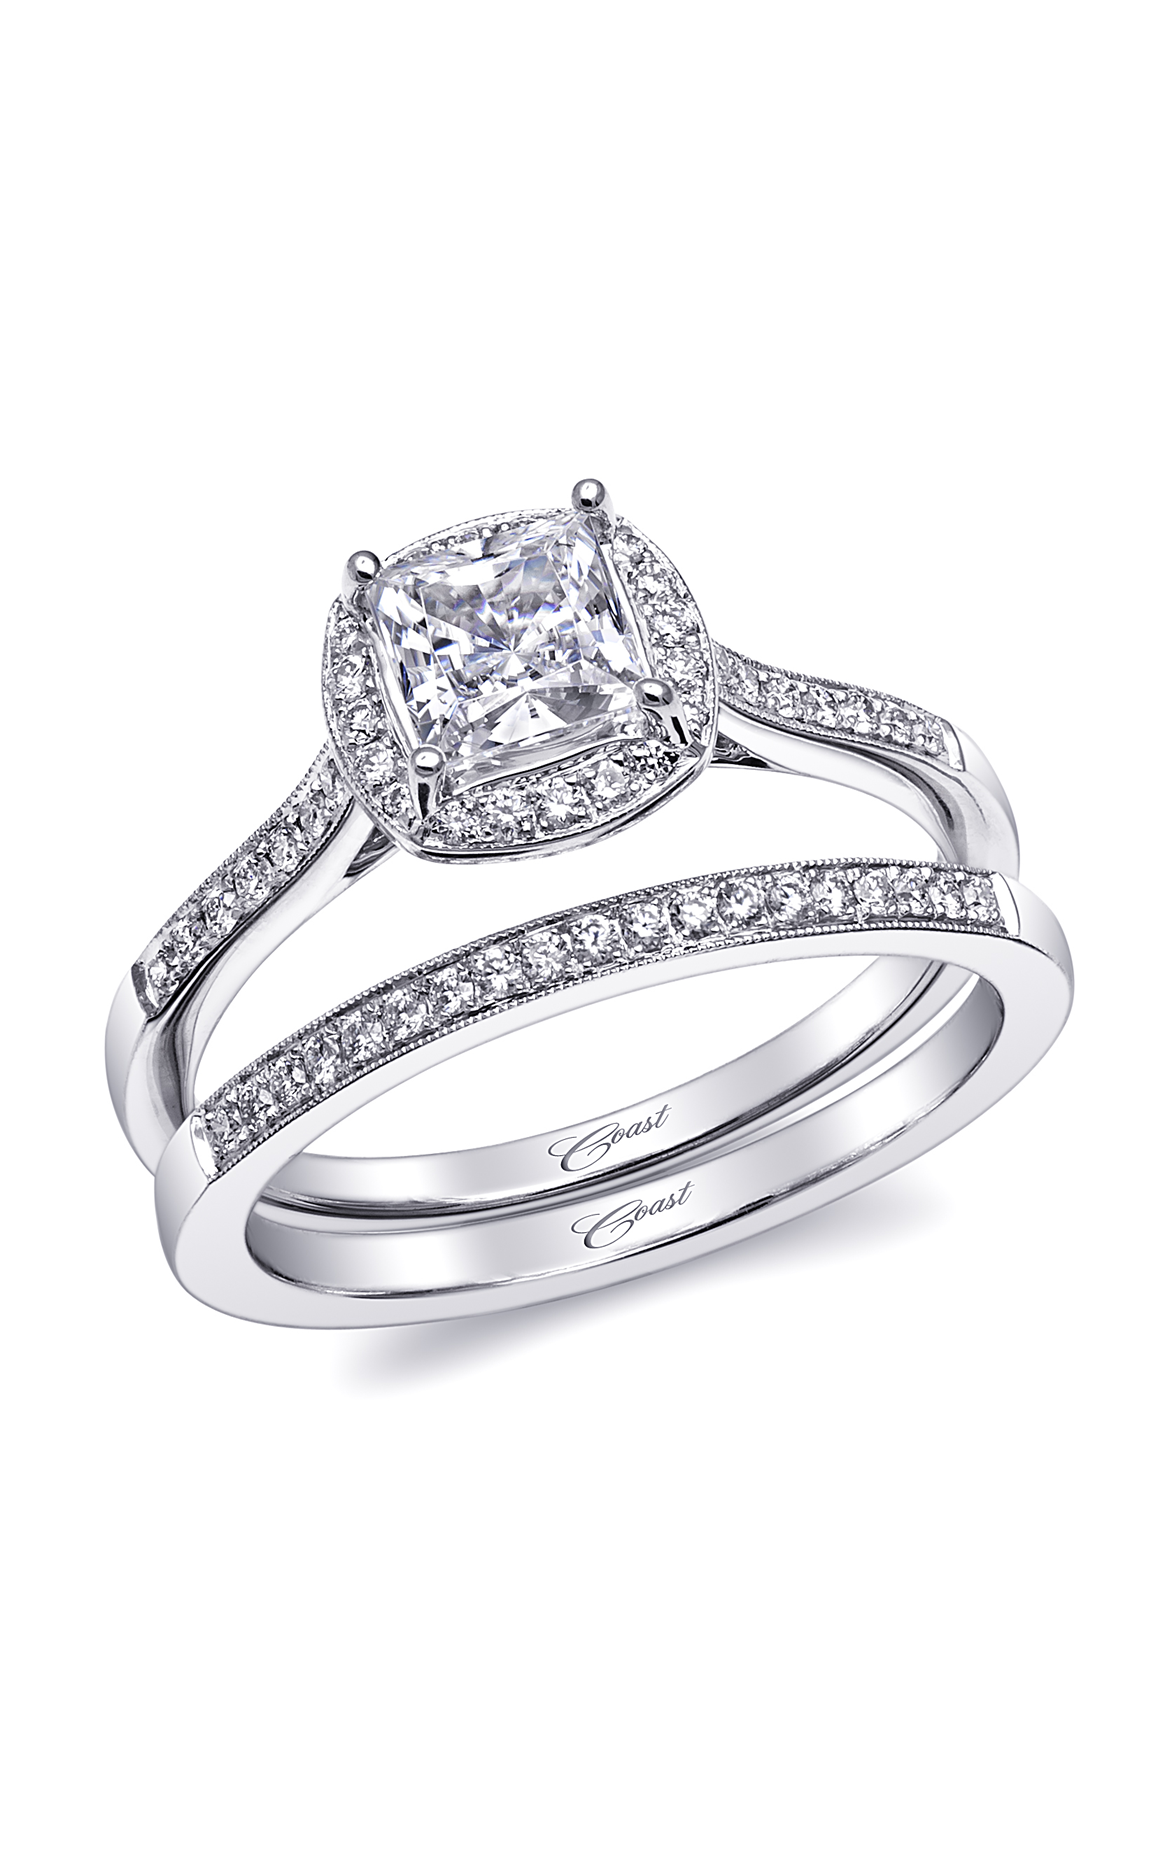 Coast Diamond Romance LC5453 product image